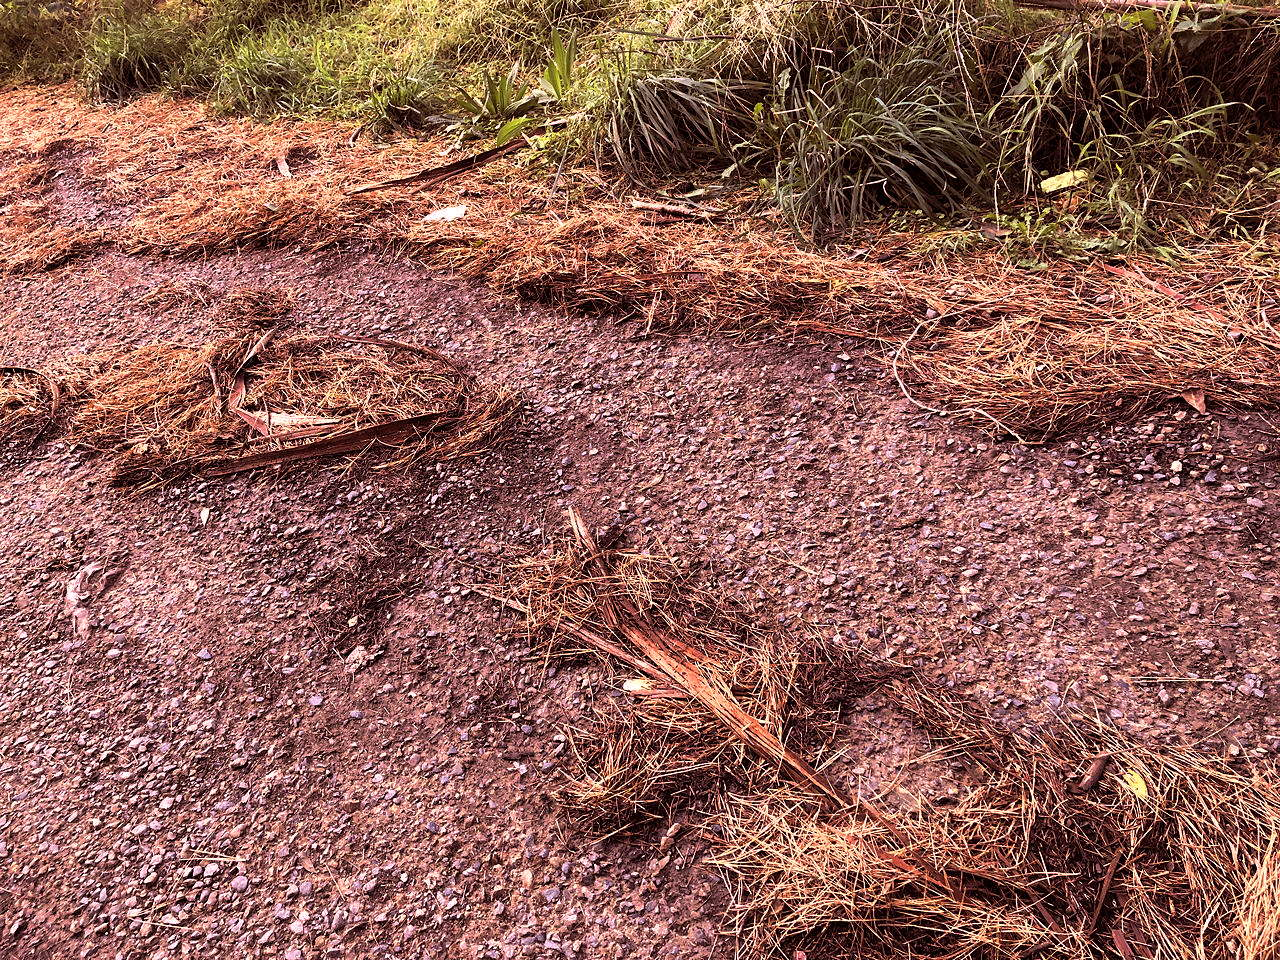 Hill path with red pine needles swept aside by rain